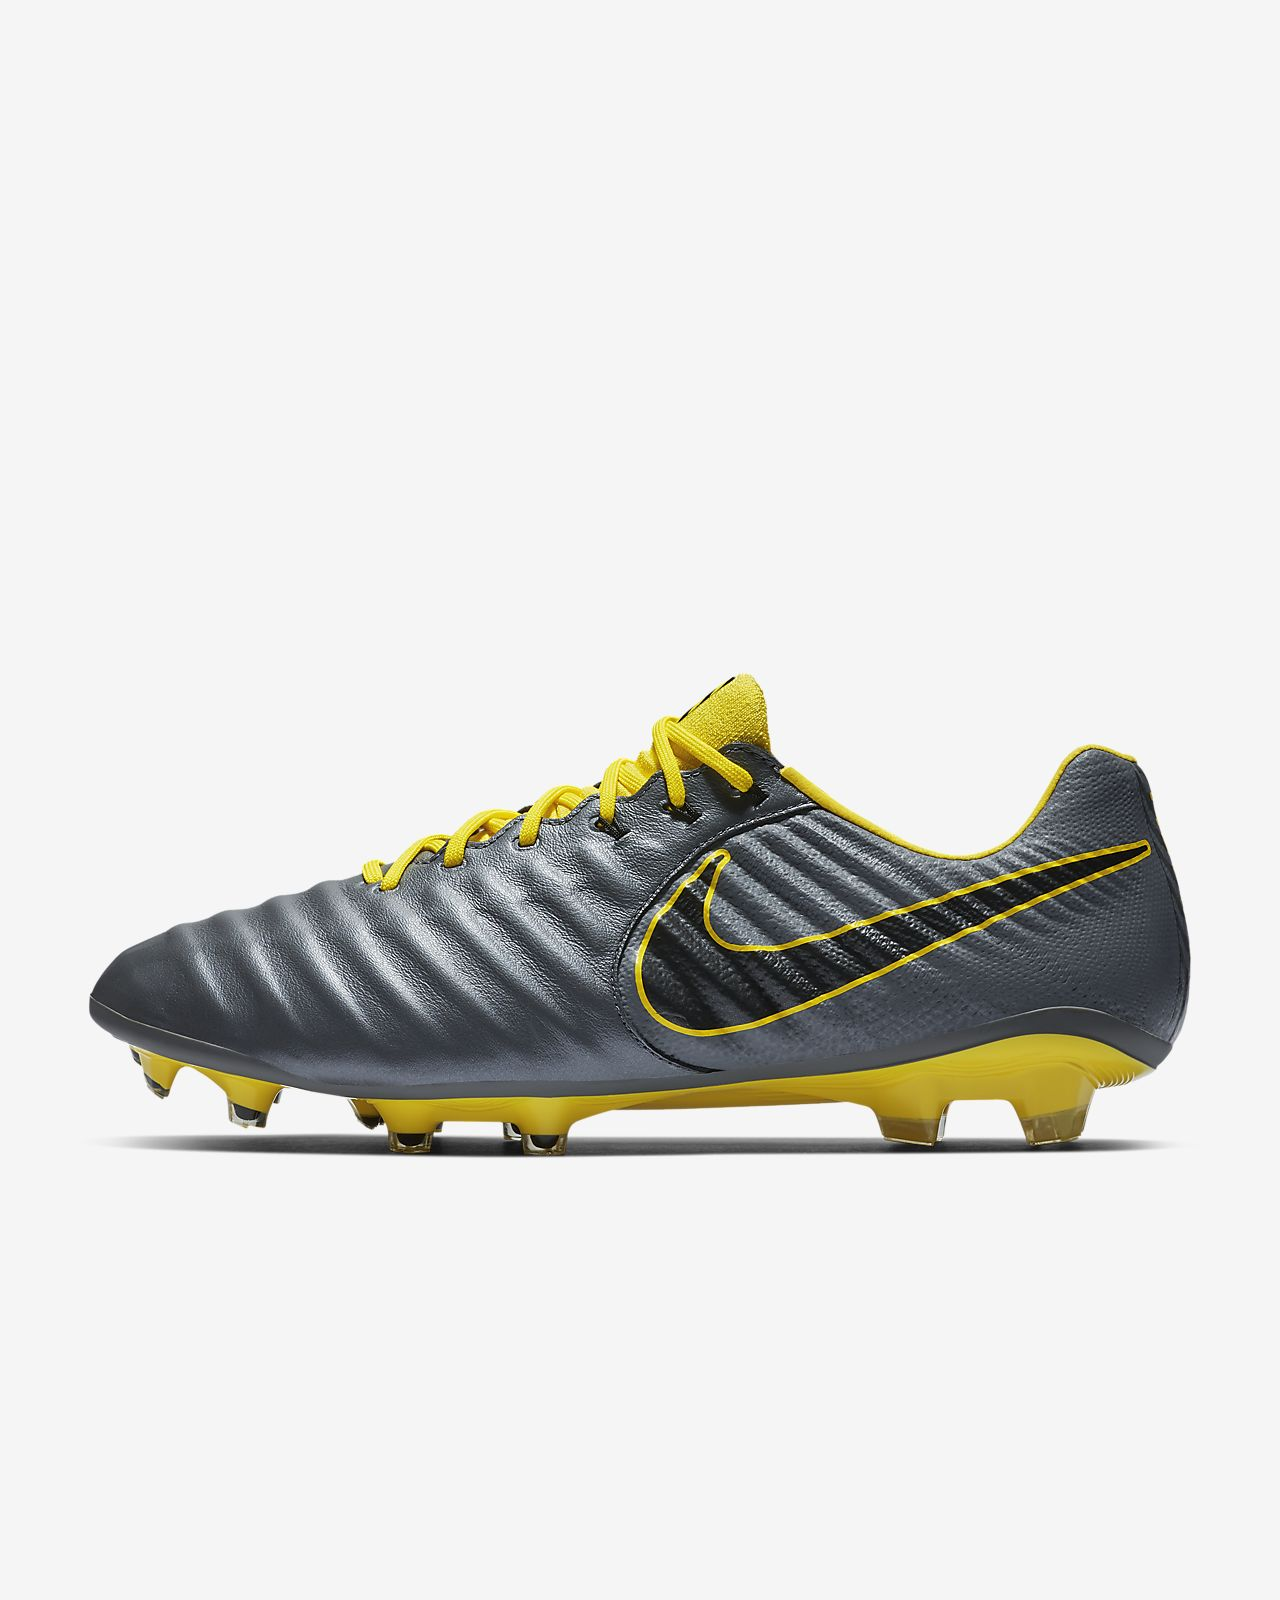 hot sale online 33fc7 04ce3 Nike Legend 7 Elite FG Game Over